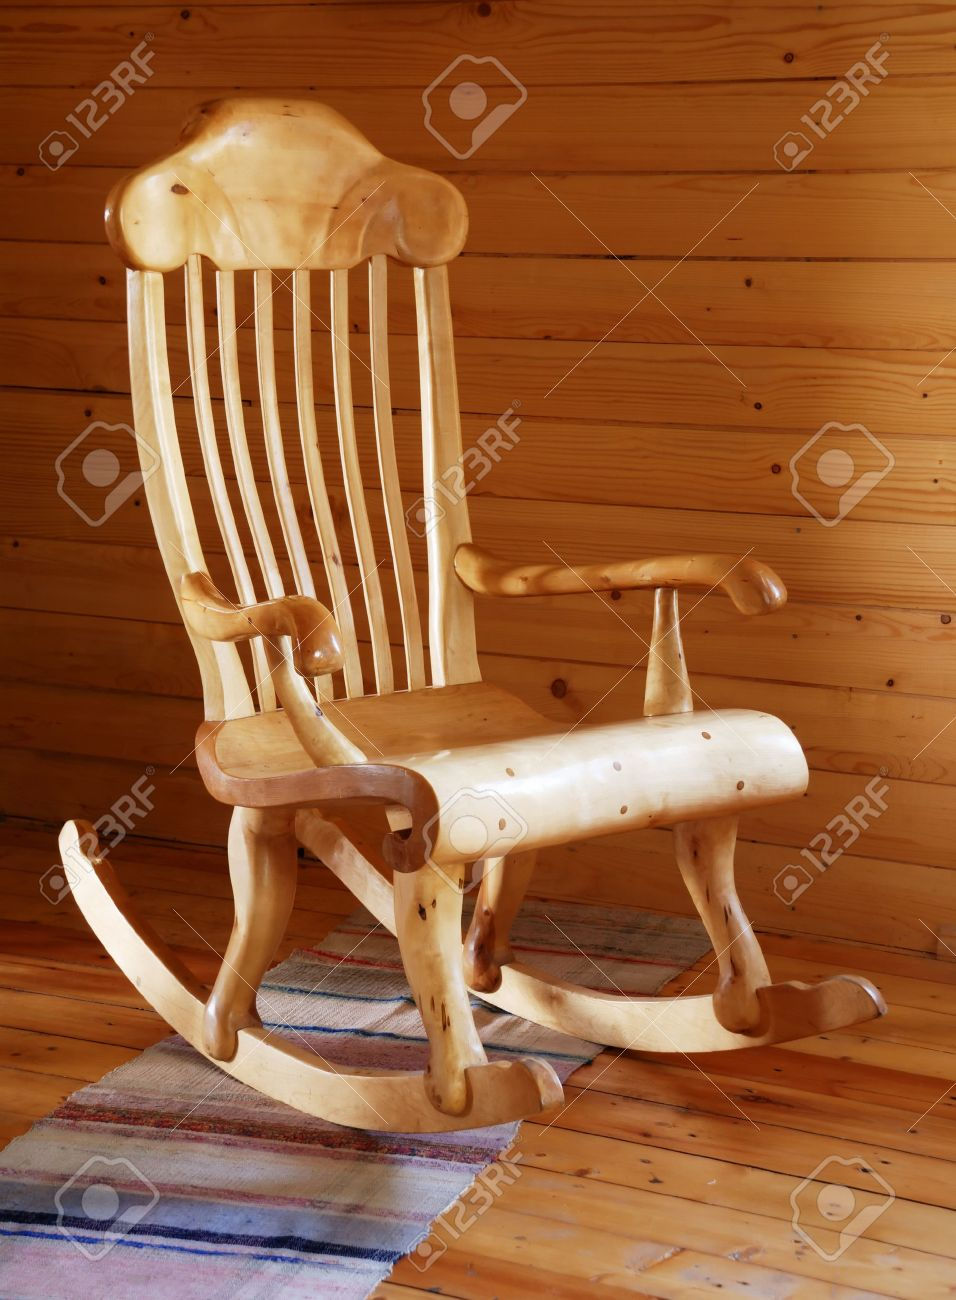 wood rocking chair styles white faux leather dining chairs carved wooden in the country style interior stock photo 3451965